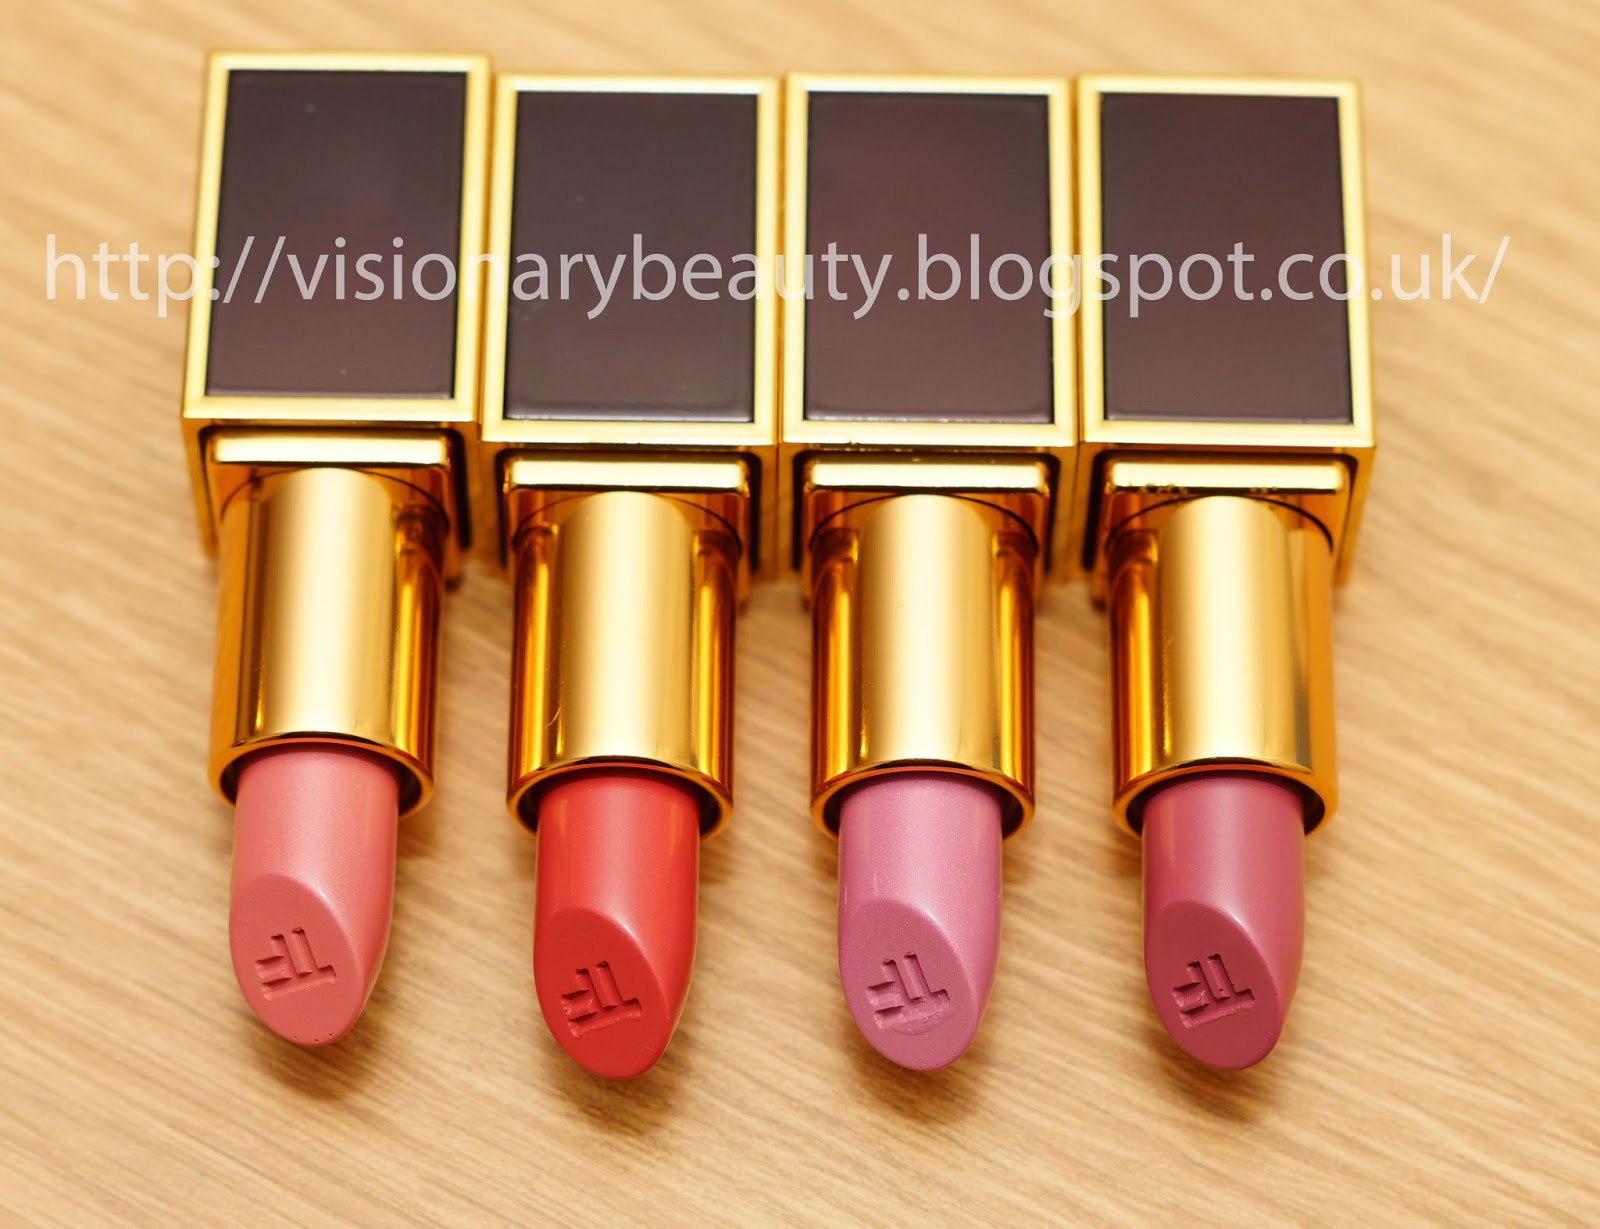 d3114f283a4 Visionary Beauty  Tom Ford Lips   Boys Collection  Julian